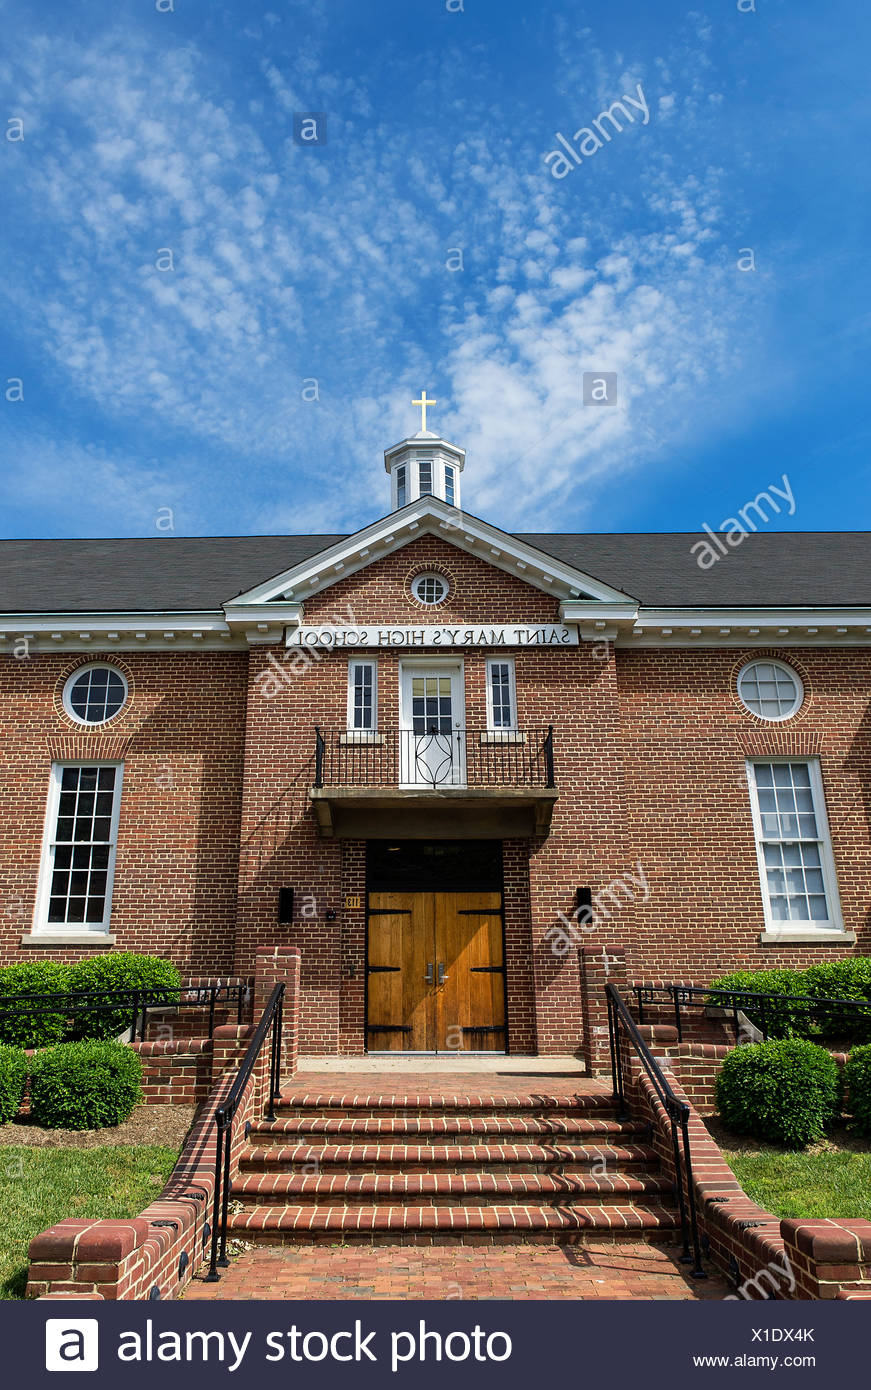 St. Mary's High School, Annapolis, Maryland, USA - Stock Image